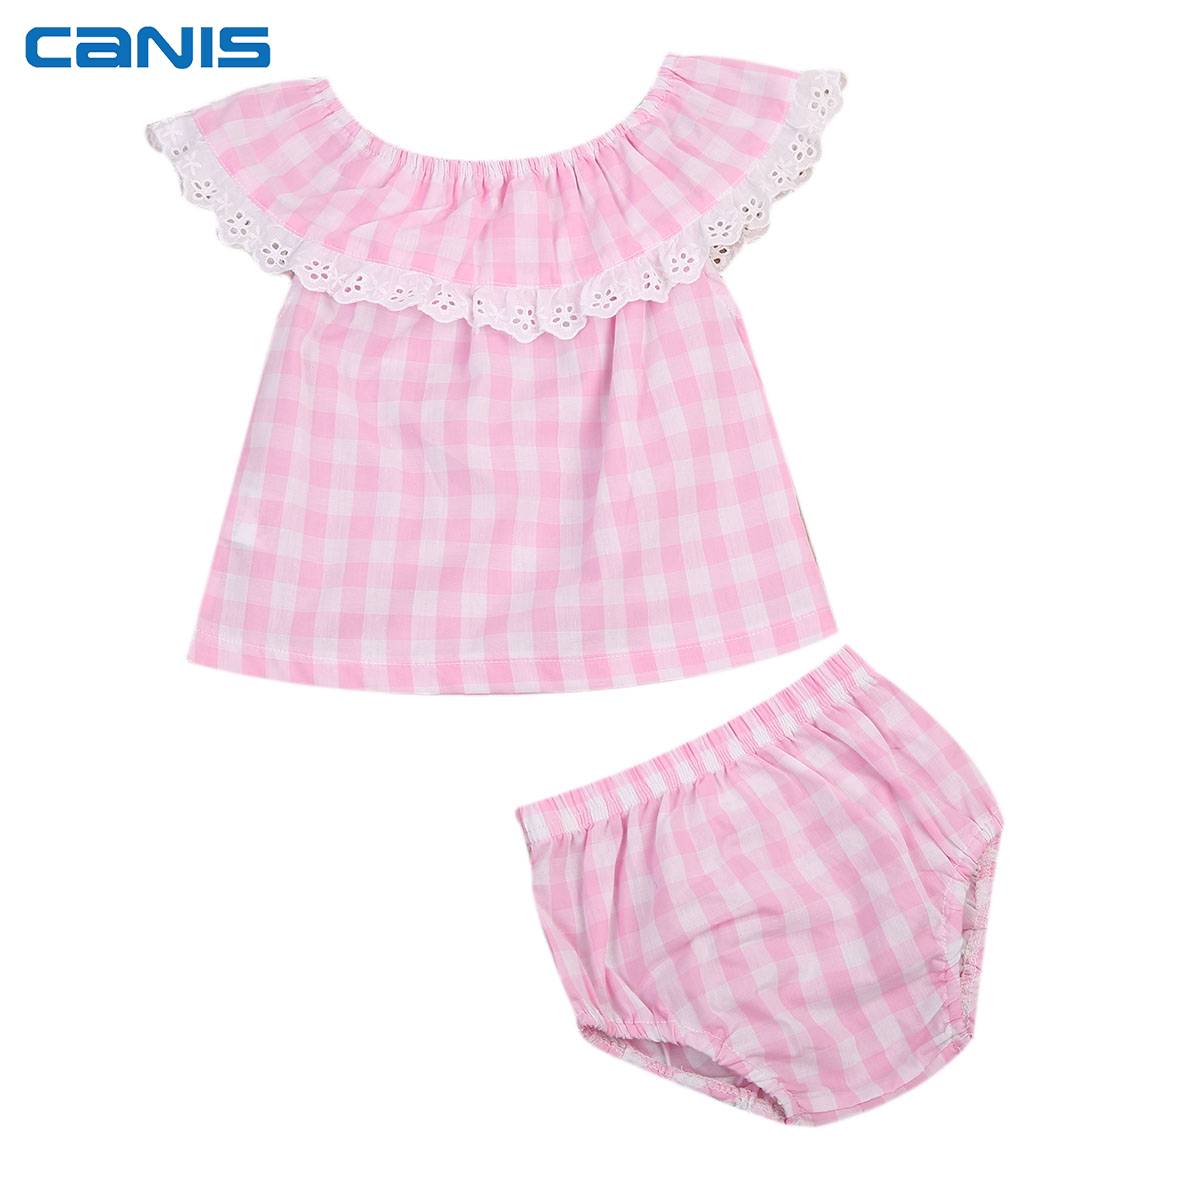 2Pcs Lovely Baby Set Newborn Infant Baby Girls Outfit Strapless T-Shirt Tops Short Pants Leggings Outfits Set Clothes Summer t shirt tops cotton denim pants 2pcs clothes sets newborn toddler kid infant baby boy clothes outfit set au 2016 new boys